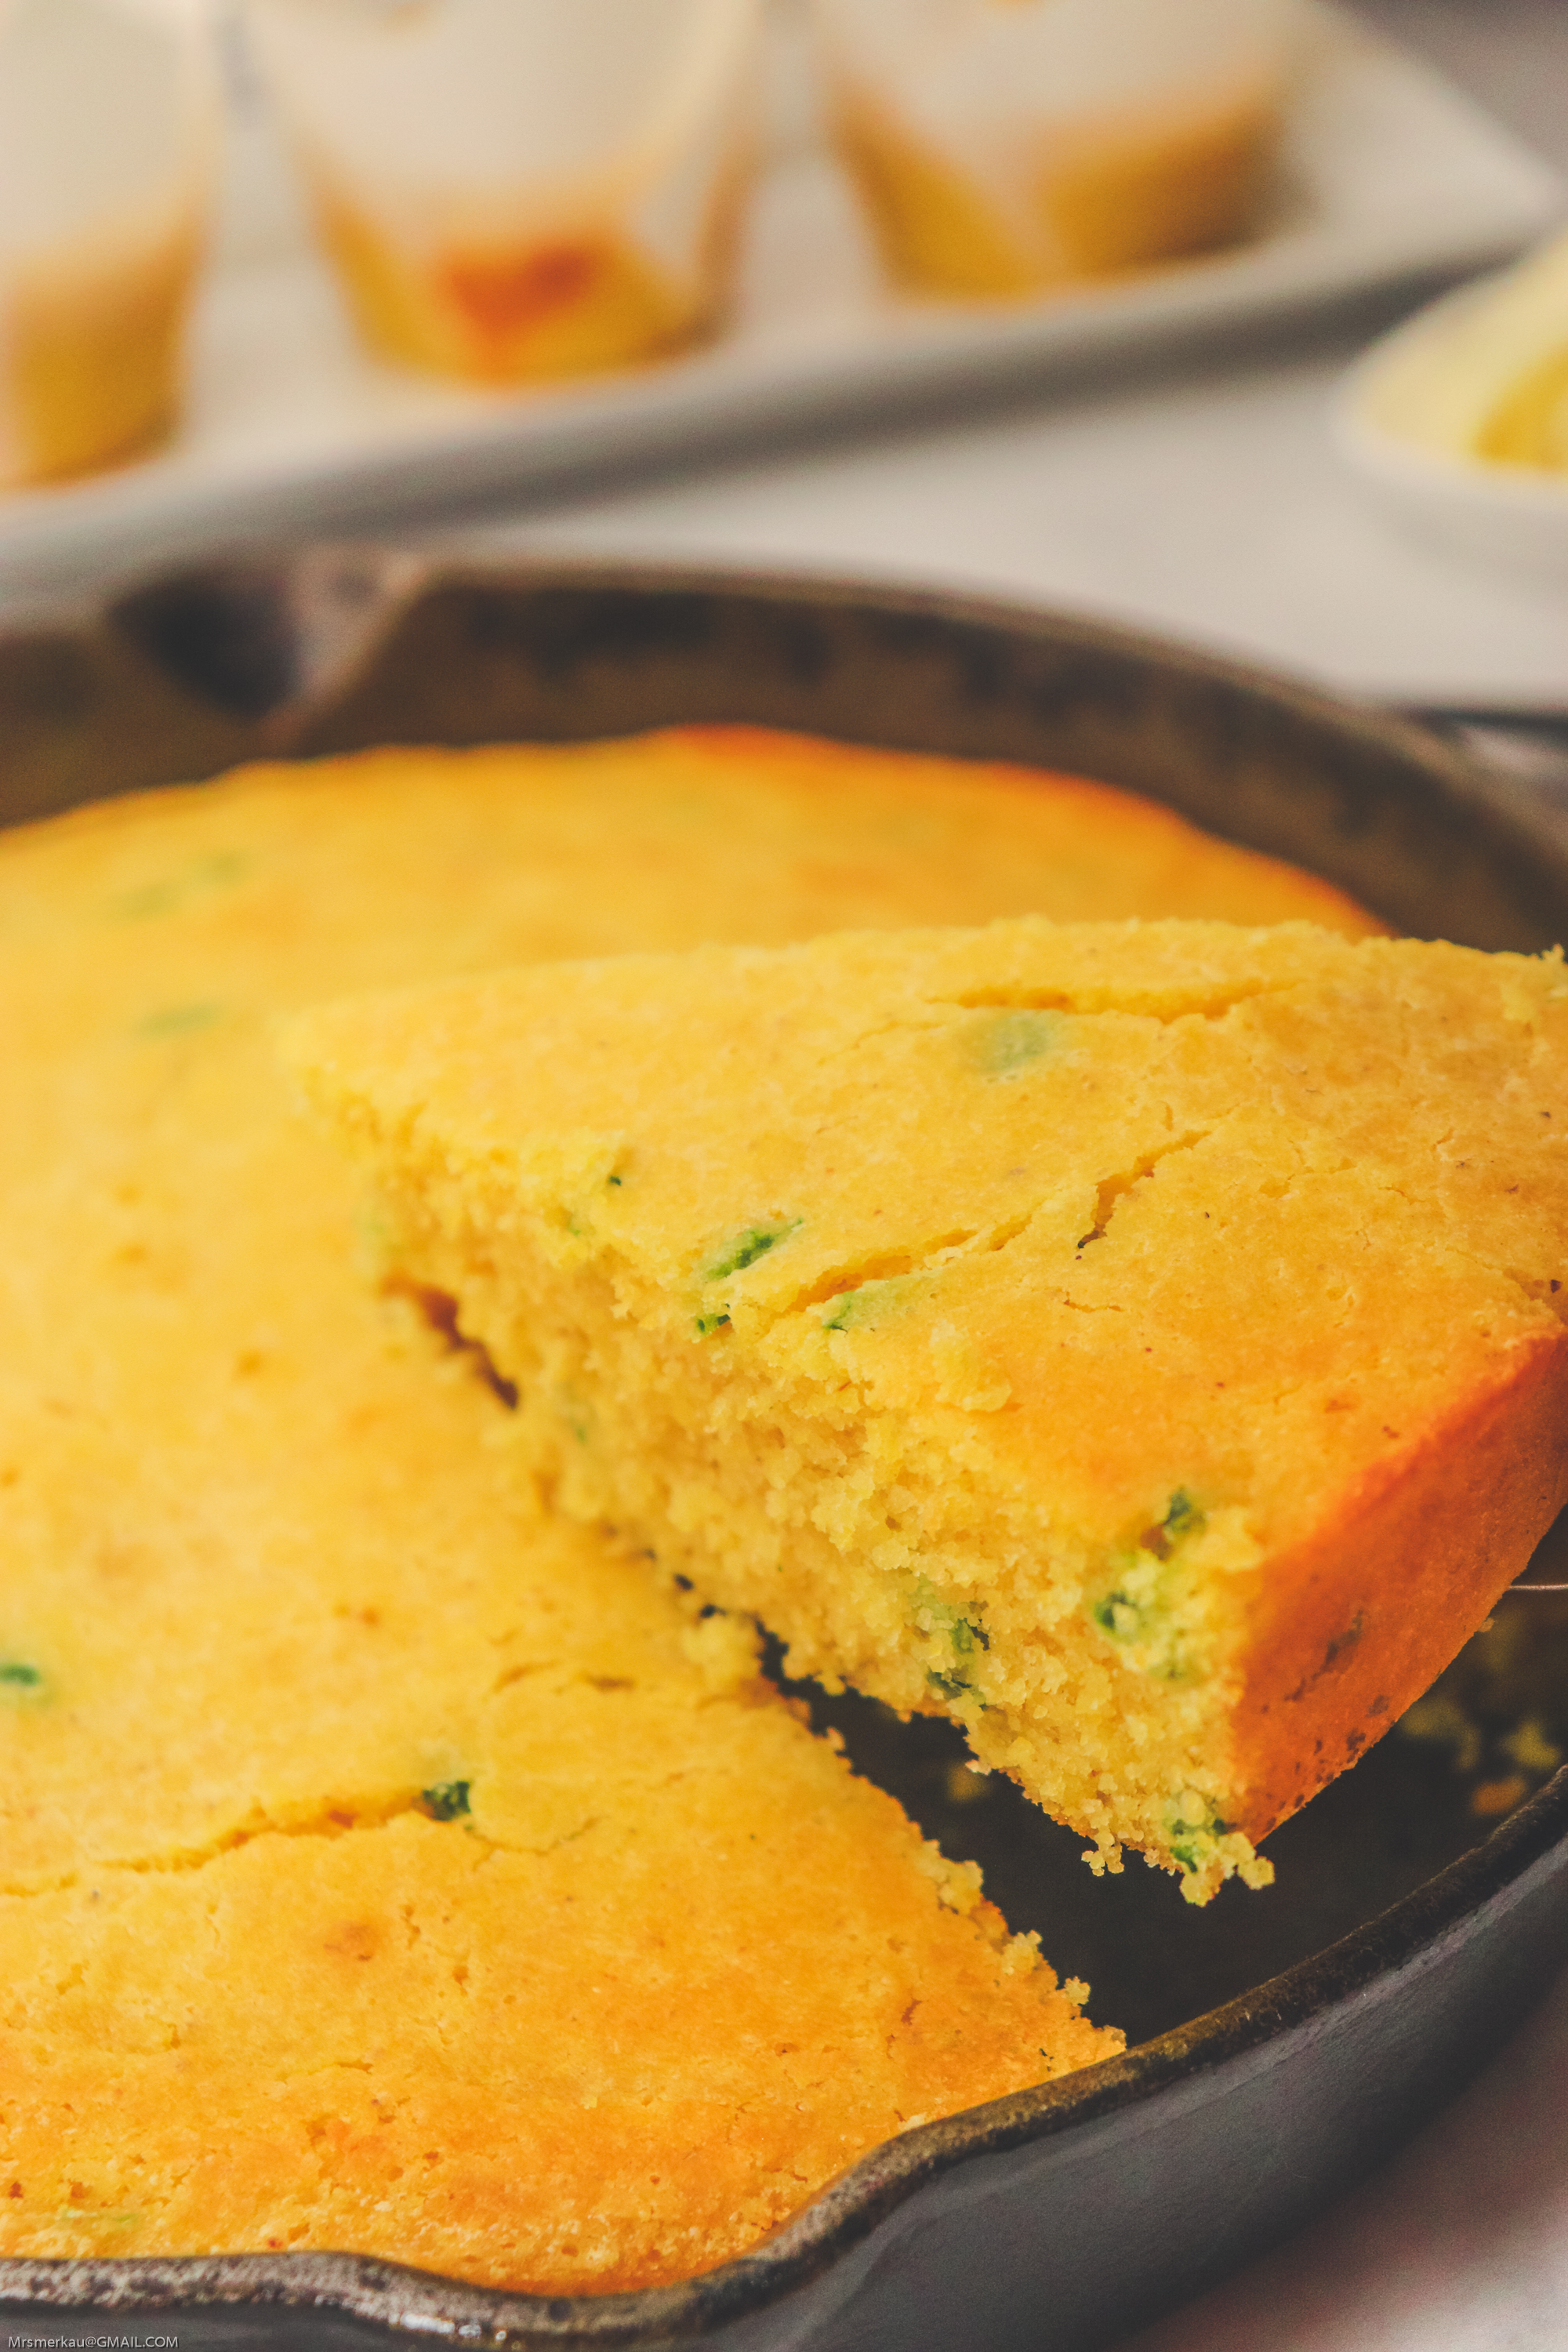 Jalapeno Skillet Cornbread Recipe - This cornbread skillet recipe is the easiest and best tasting cornbread. Seasoned with jalapeno peppers, this cornbread recipe makes an amazing side dish to any of your favorite meals.